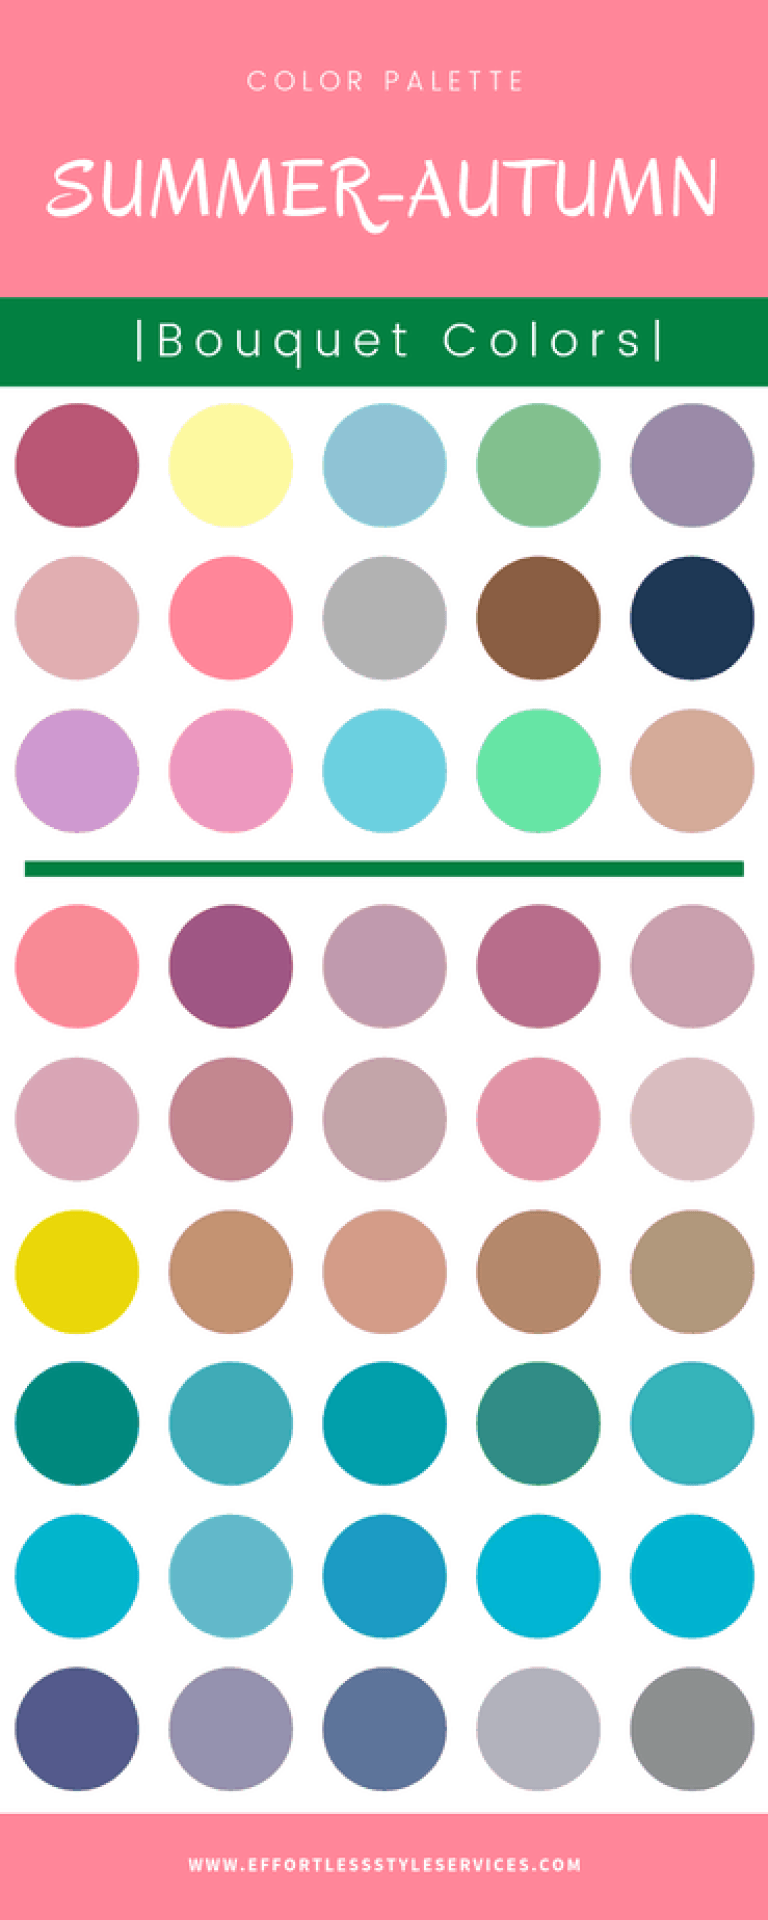 Summer ~ Seasonal Color ~ Effortless Style Services #autumncolorpalette